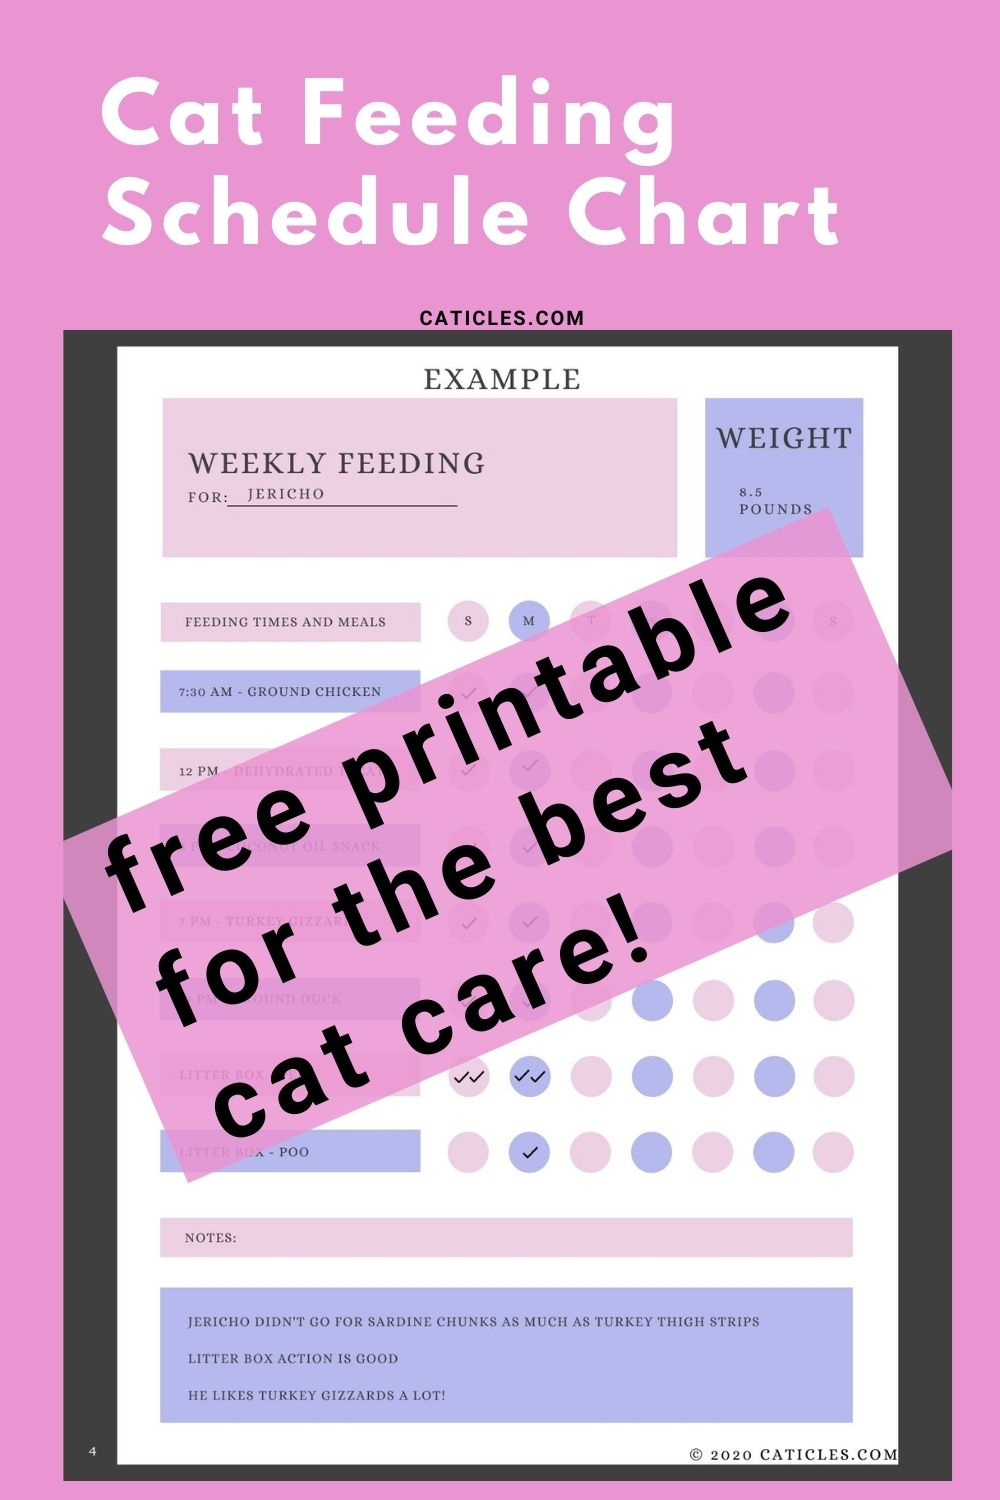 Cat Feeding Schedule Chart [How Many Times To Feed Guide